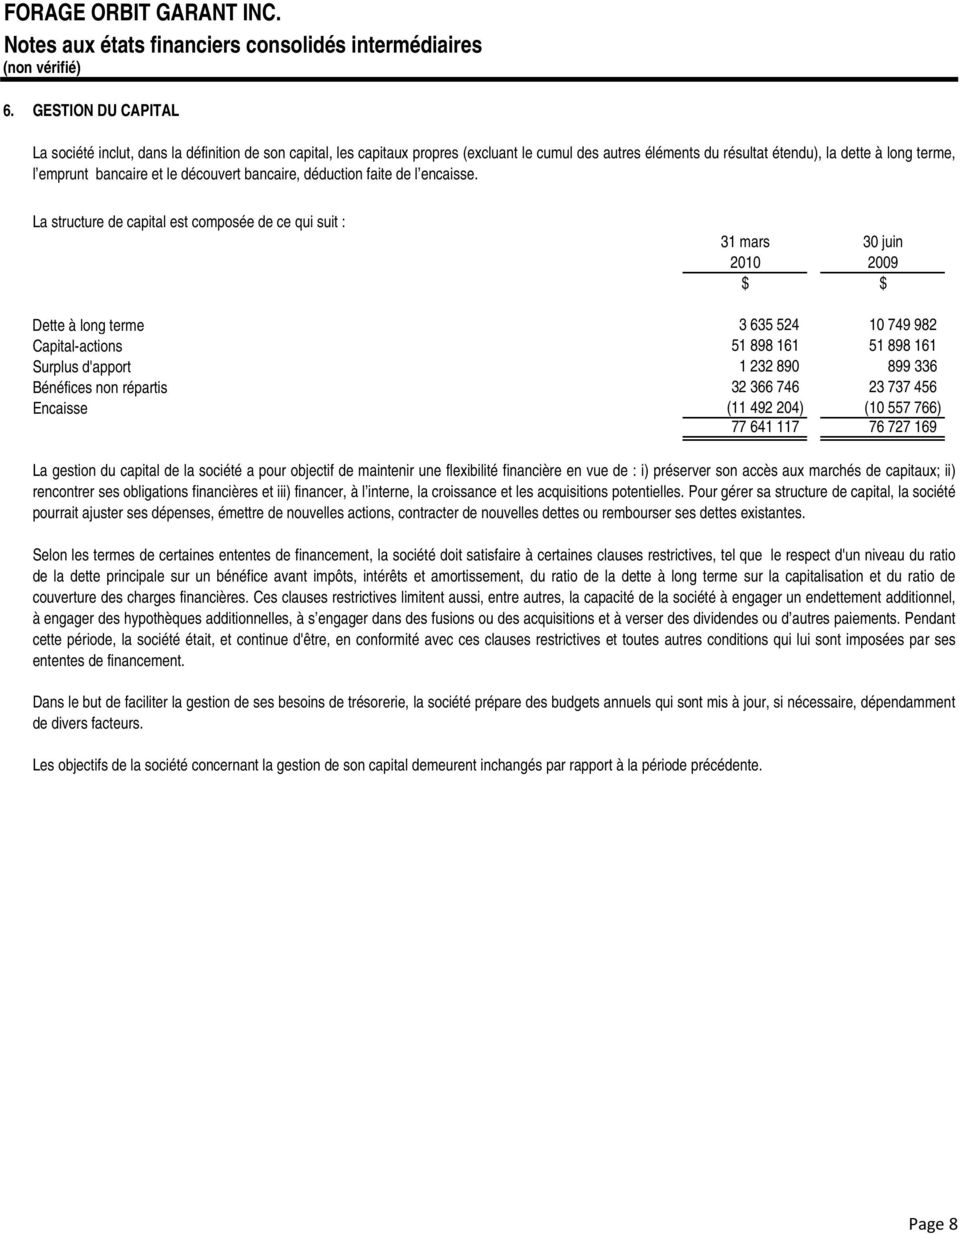 La structure de capital est composée de ce qui suit : 31 mars 30 juin 2010 2009 $ $ Dette à long terme 3 635 524 10 749 982 Capital-actions 51 898 161 51 898 161 Surplus d'apport 1 232 890 899 336